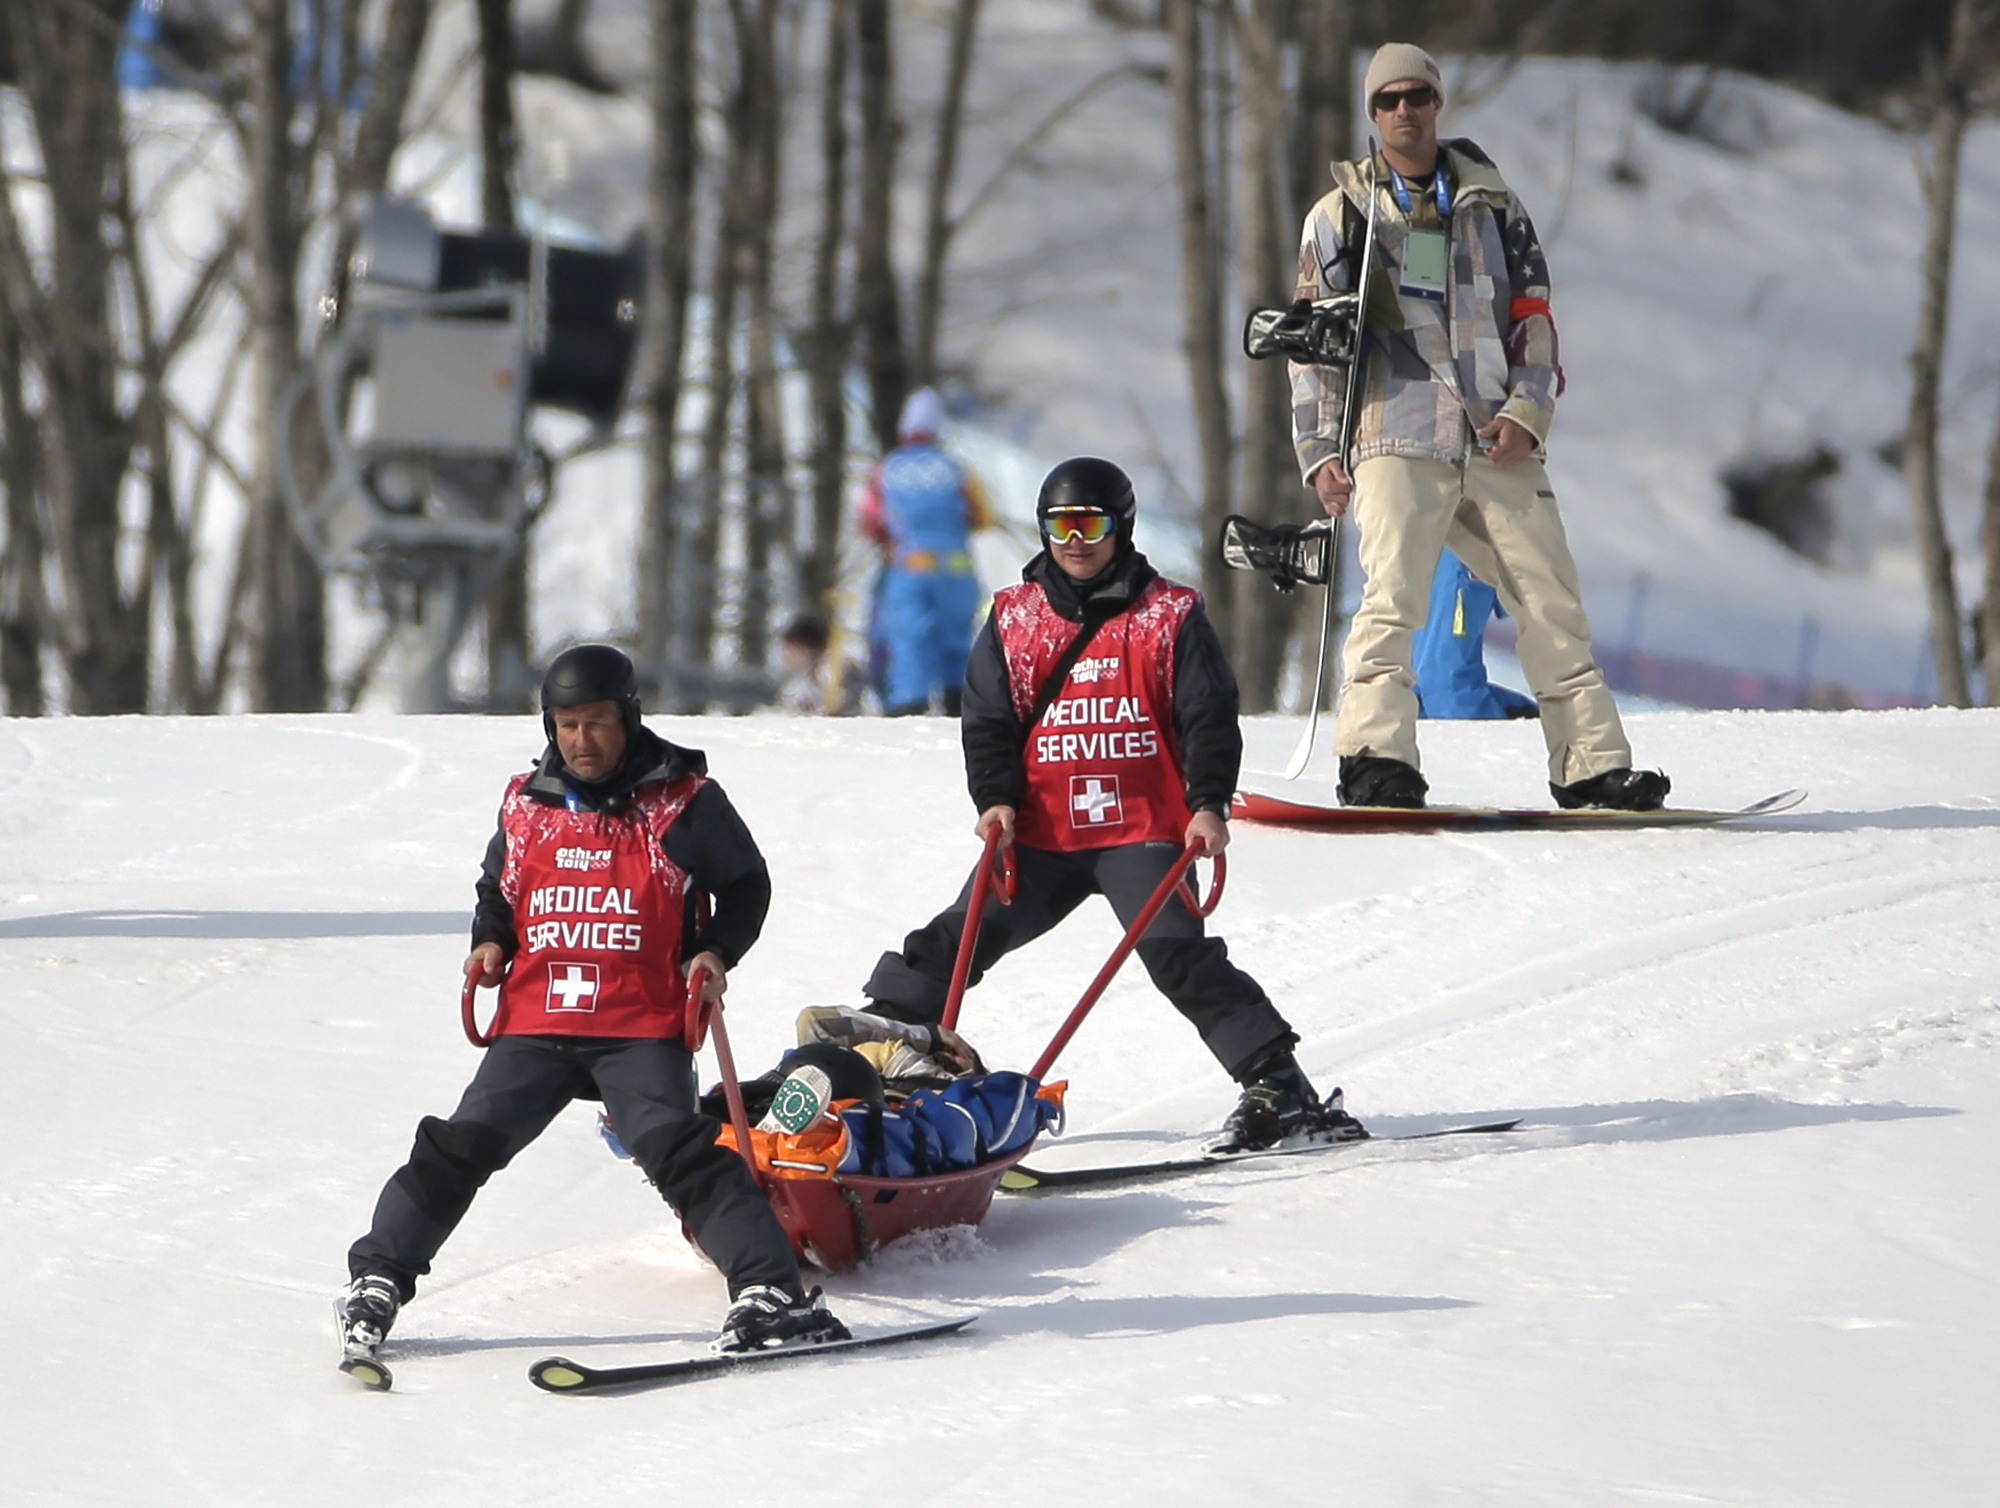 Jacqueline Hernandez of the United States is carried off the course in a stretcher after crashing in a seeding run during women's snowboard cross competition at the Rosa Khutor Extreme Park, at the 2014 Winter Olympics, Sunday, Feb. 16, 2014, in Krasnaya Polyana, Russia. (AP Photo/Andy Wong)